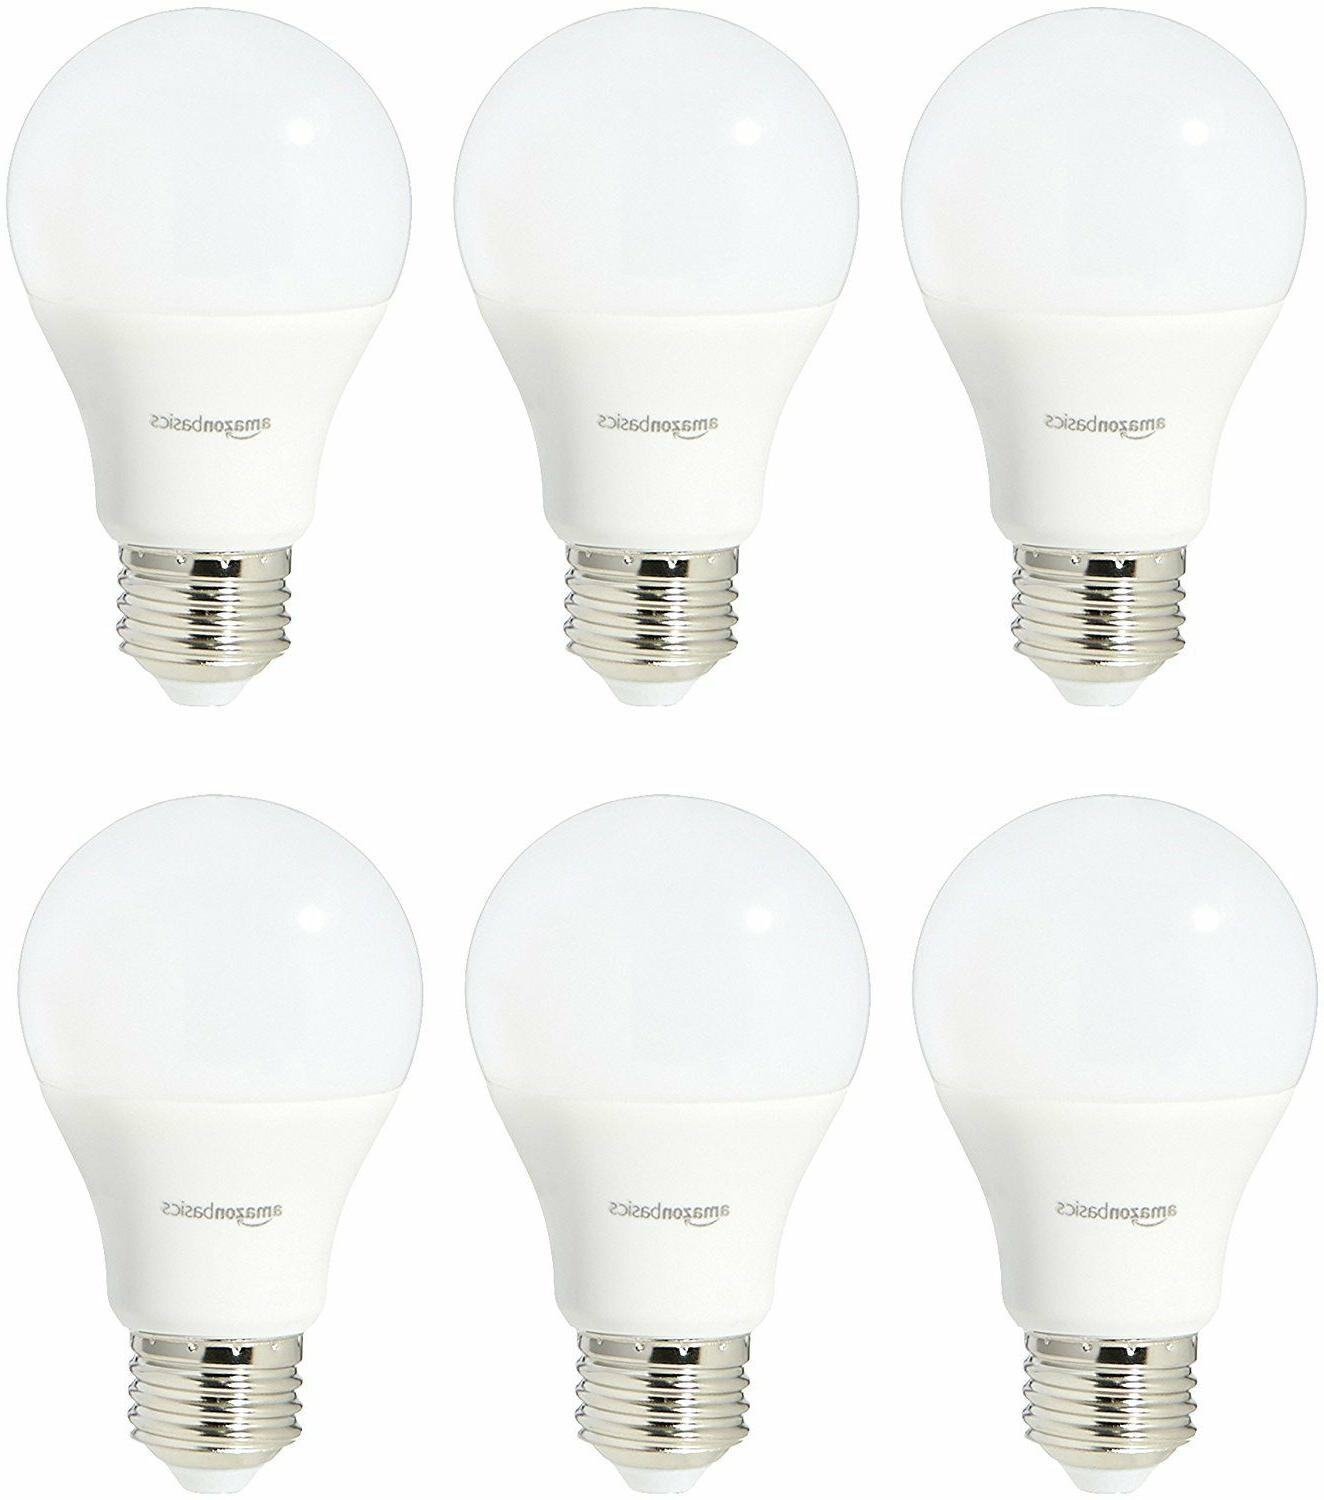 AmazonBasics 75 Watt Equivalent, Daylight, Non-Dimmable, A19